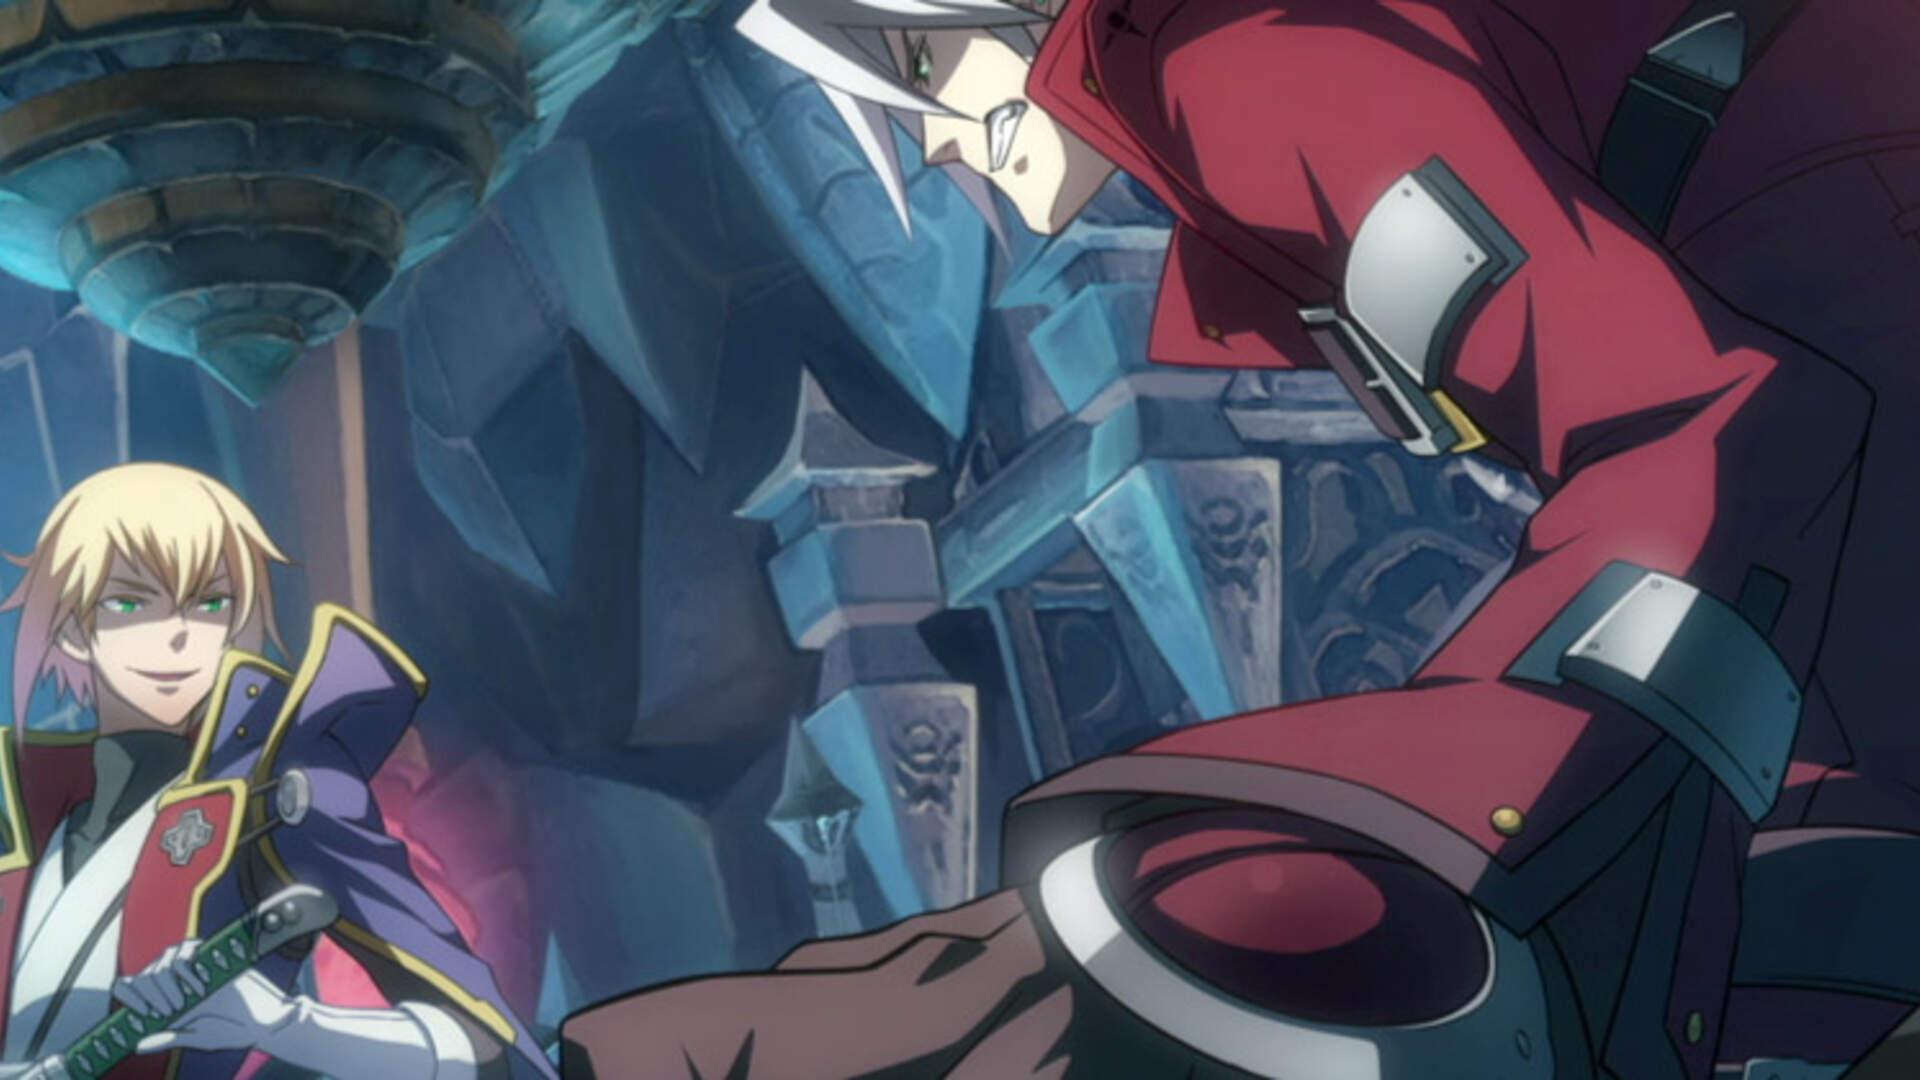 BlazBlue: Chrono Phantasma PS3 Review: The Wheel of Fate Turns Once More